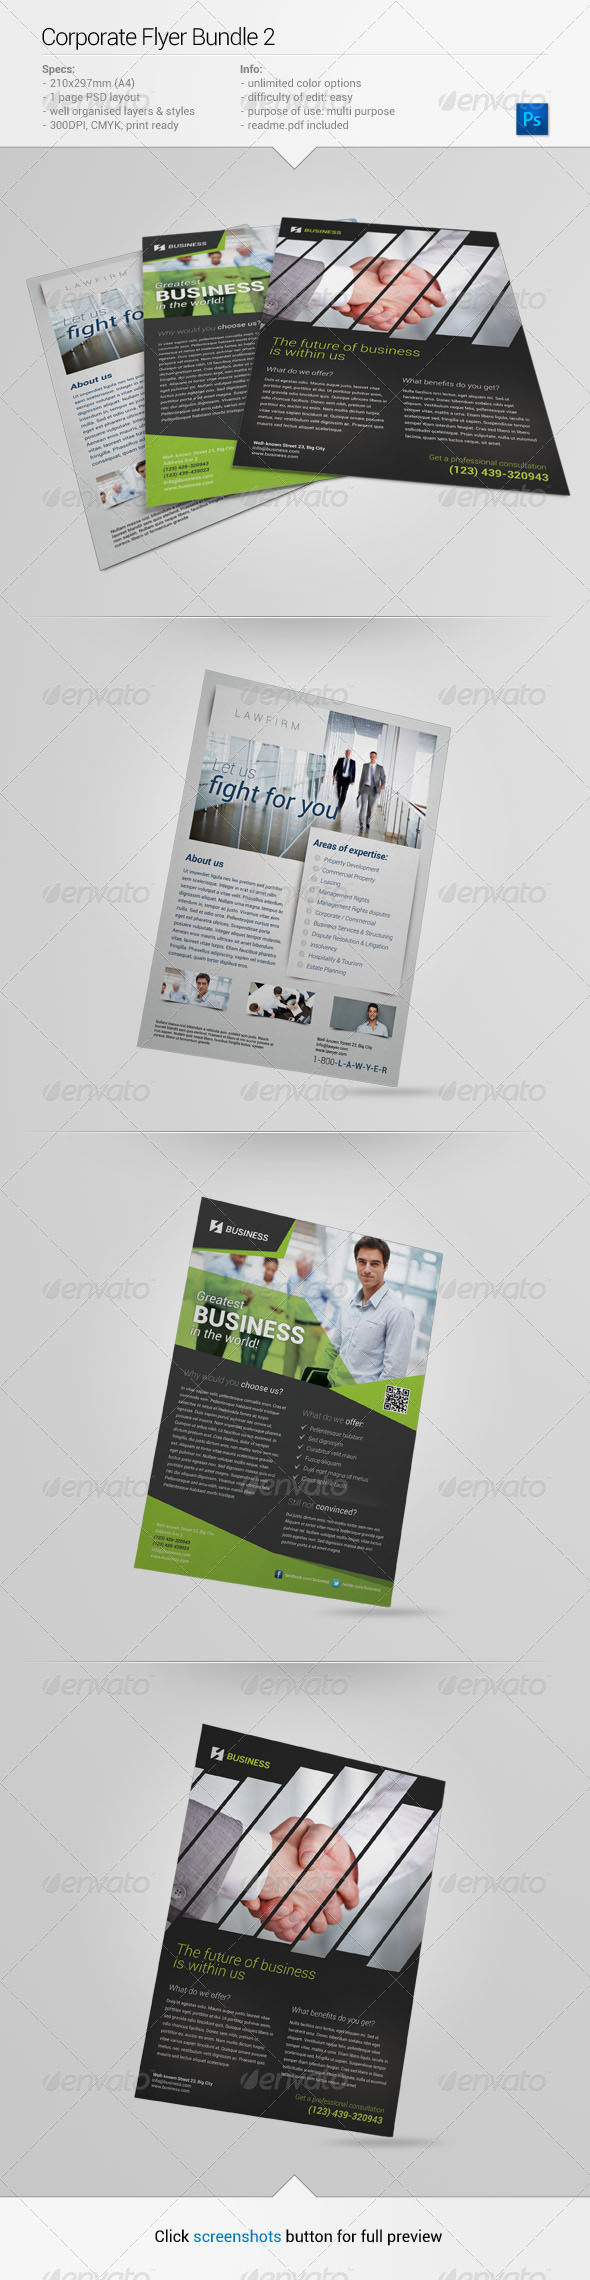 GraphicRiver Corporate Flyer Bundle 2 6643342